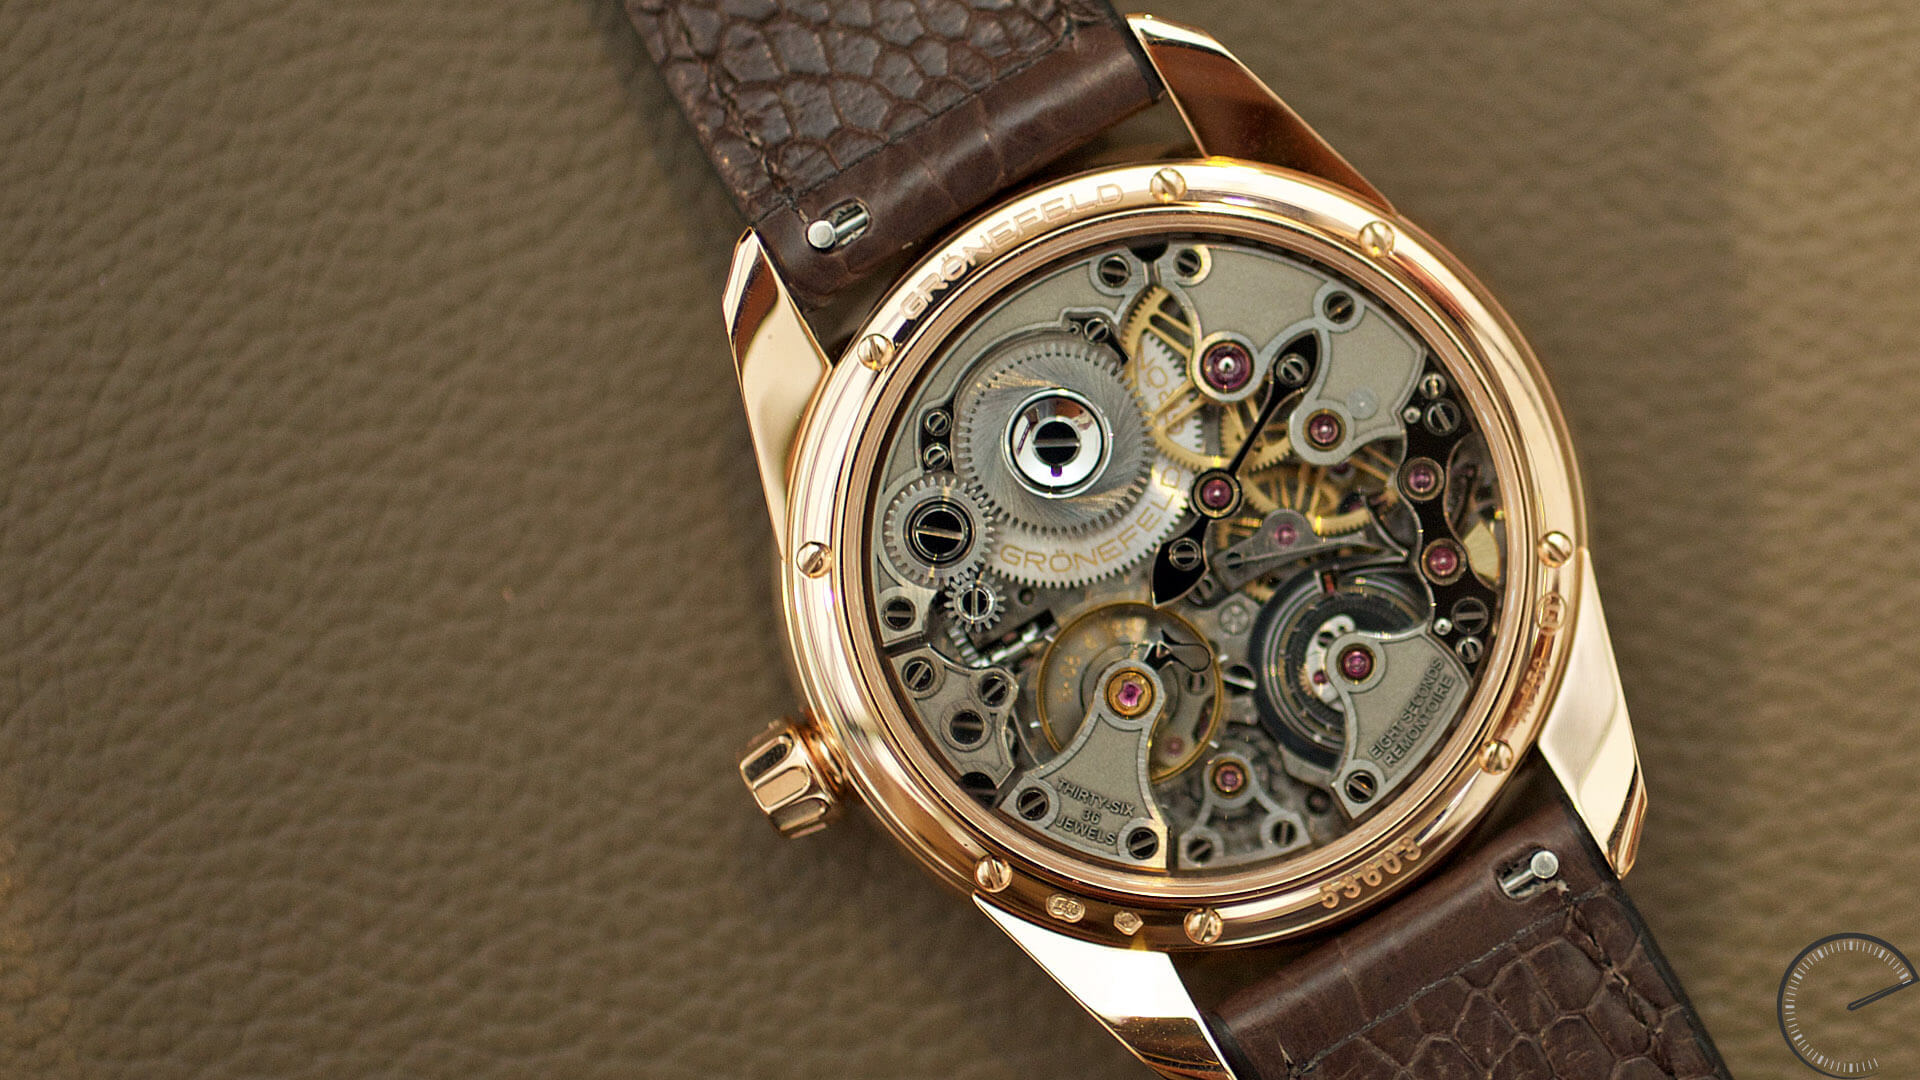 Gronefeld_1941_Remontoire_Red_Gold_caseback - ESCAPEMENT magazine - reviews of fine watches